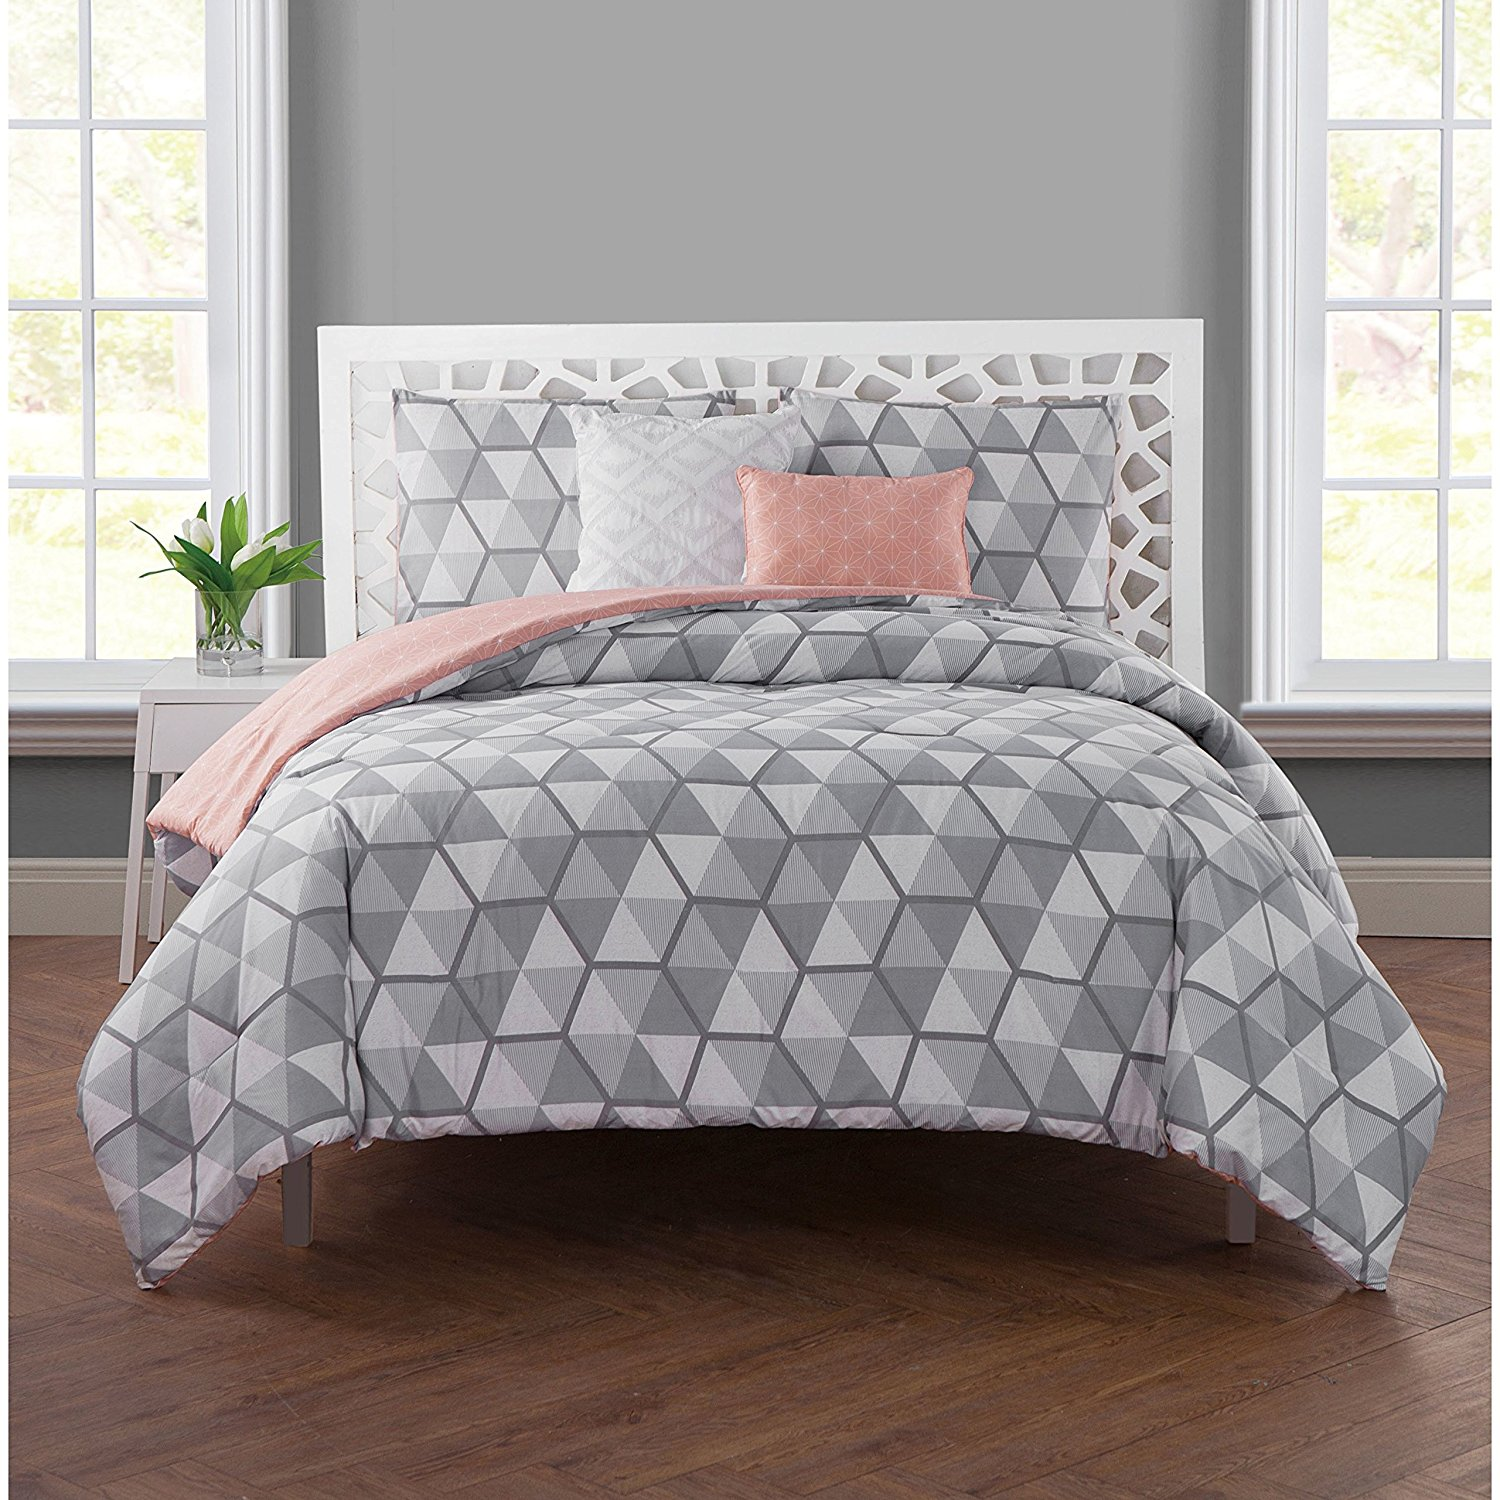 Buy Camp Shapes Pentagon Hexagon Heptagon New Math Geometry - Geometrical-shapes-on-bedding